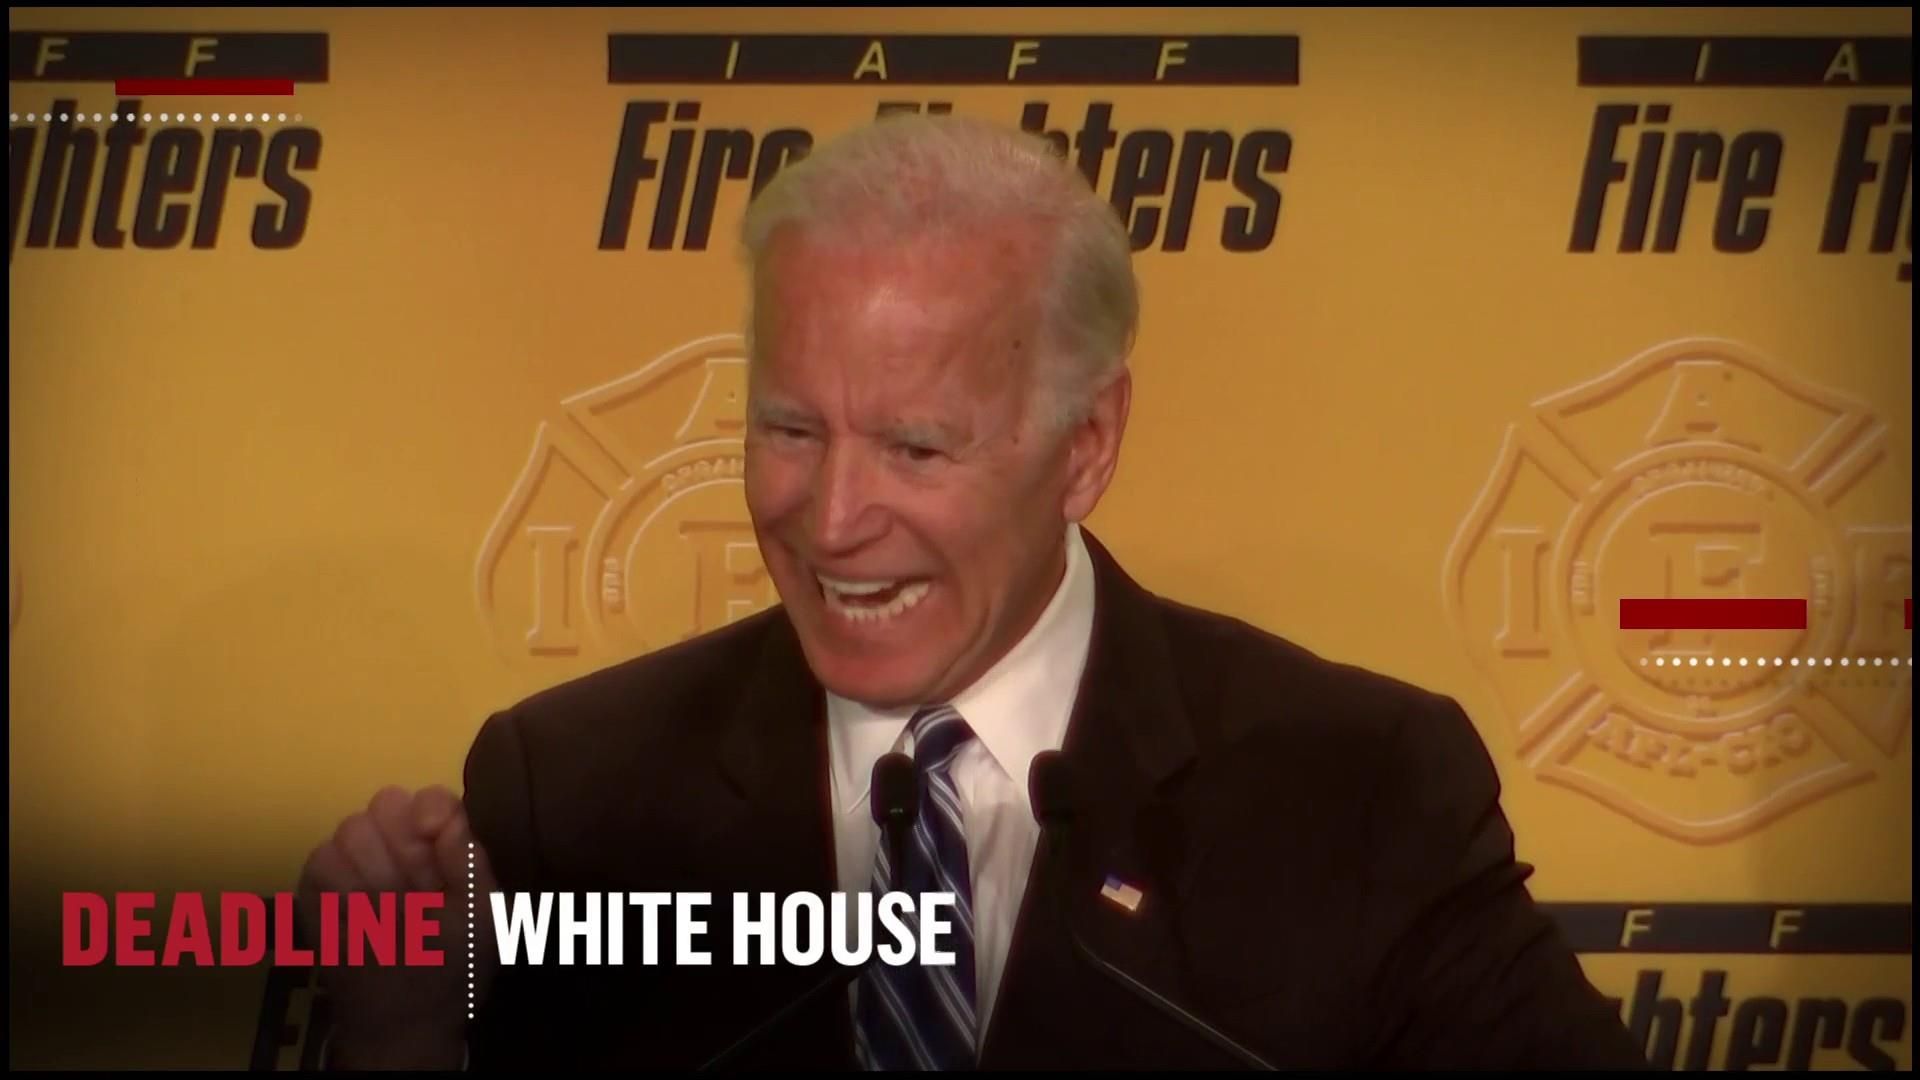 Biden 2020 all but a sure thing?